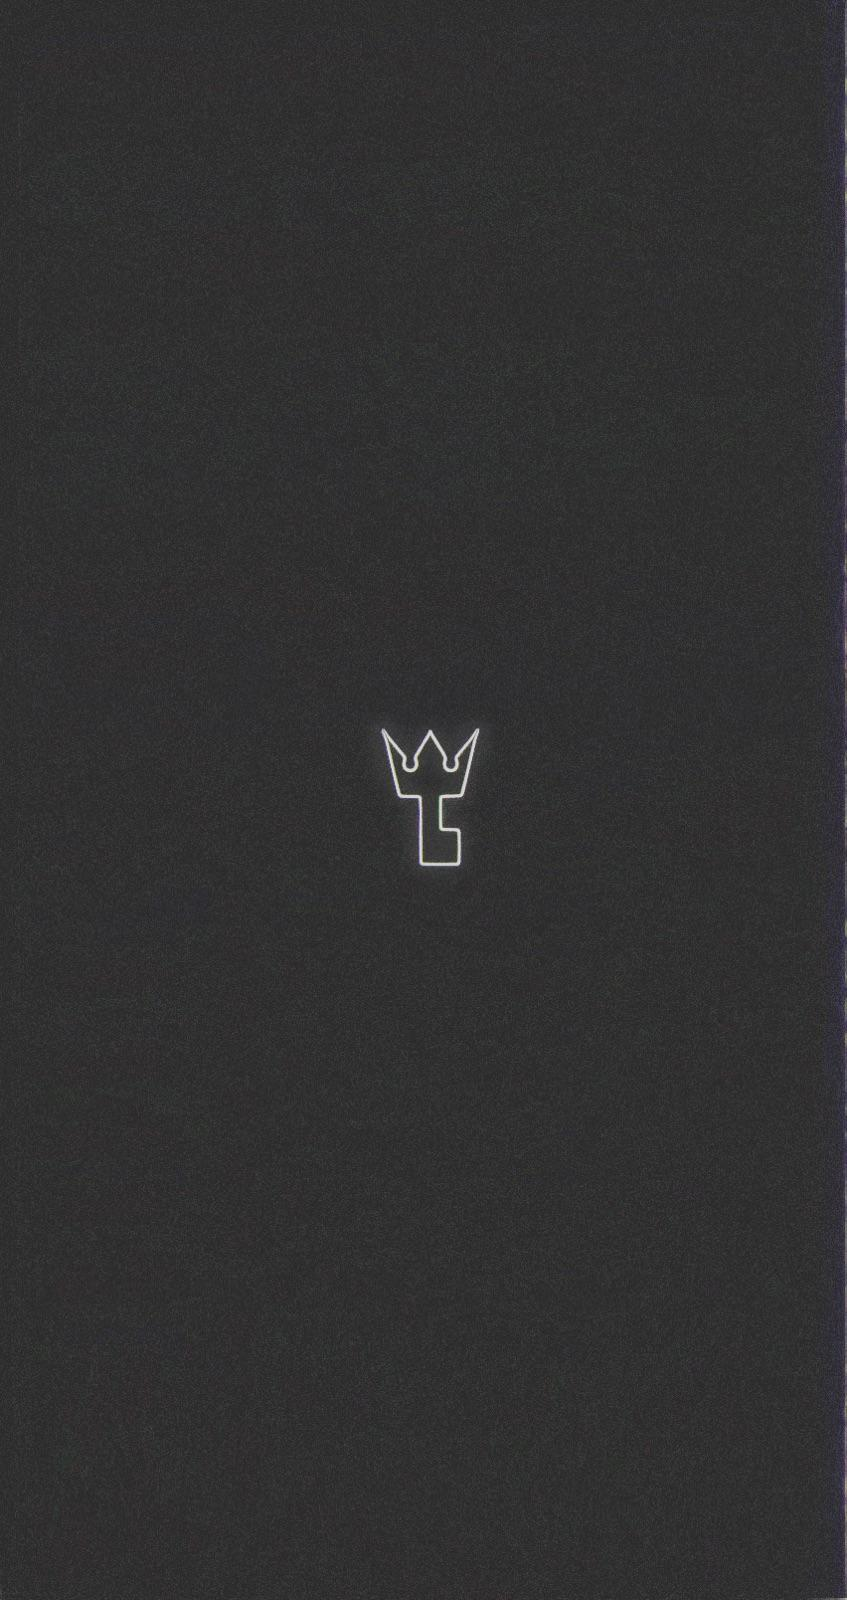 847x1600 Media] made a minimalistic Kingdom Hearts iPhone wallpaper if you're ...